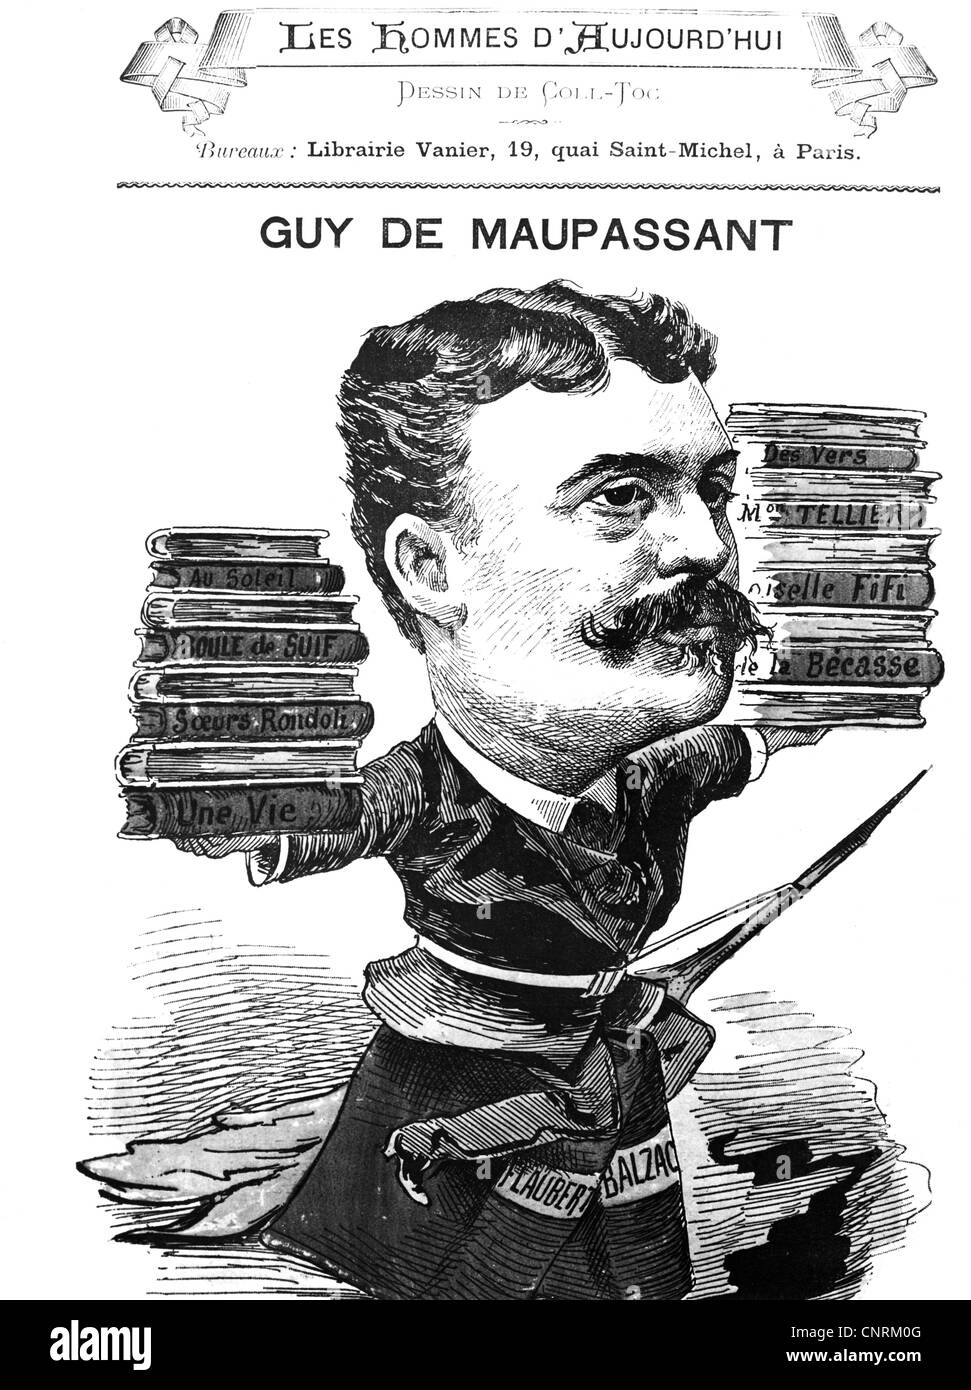 a biography of guy de maupassant a french writer Henri rené albert guy de maupassant (/ ˈ m oʊ p ə ˌ s ɑː n t / french: [ɡid(ə) mopasɑ̃] 5 august 1850 - 6 july 1893) was a french writer, remembered as a master of the short story form, and as a representative of the naturalist school of writers, who depicted human lives and destinies and social forces in disillusioned and often.